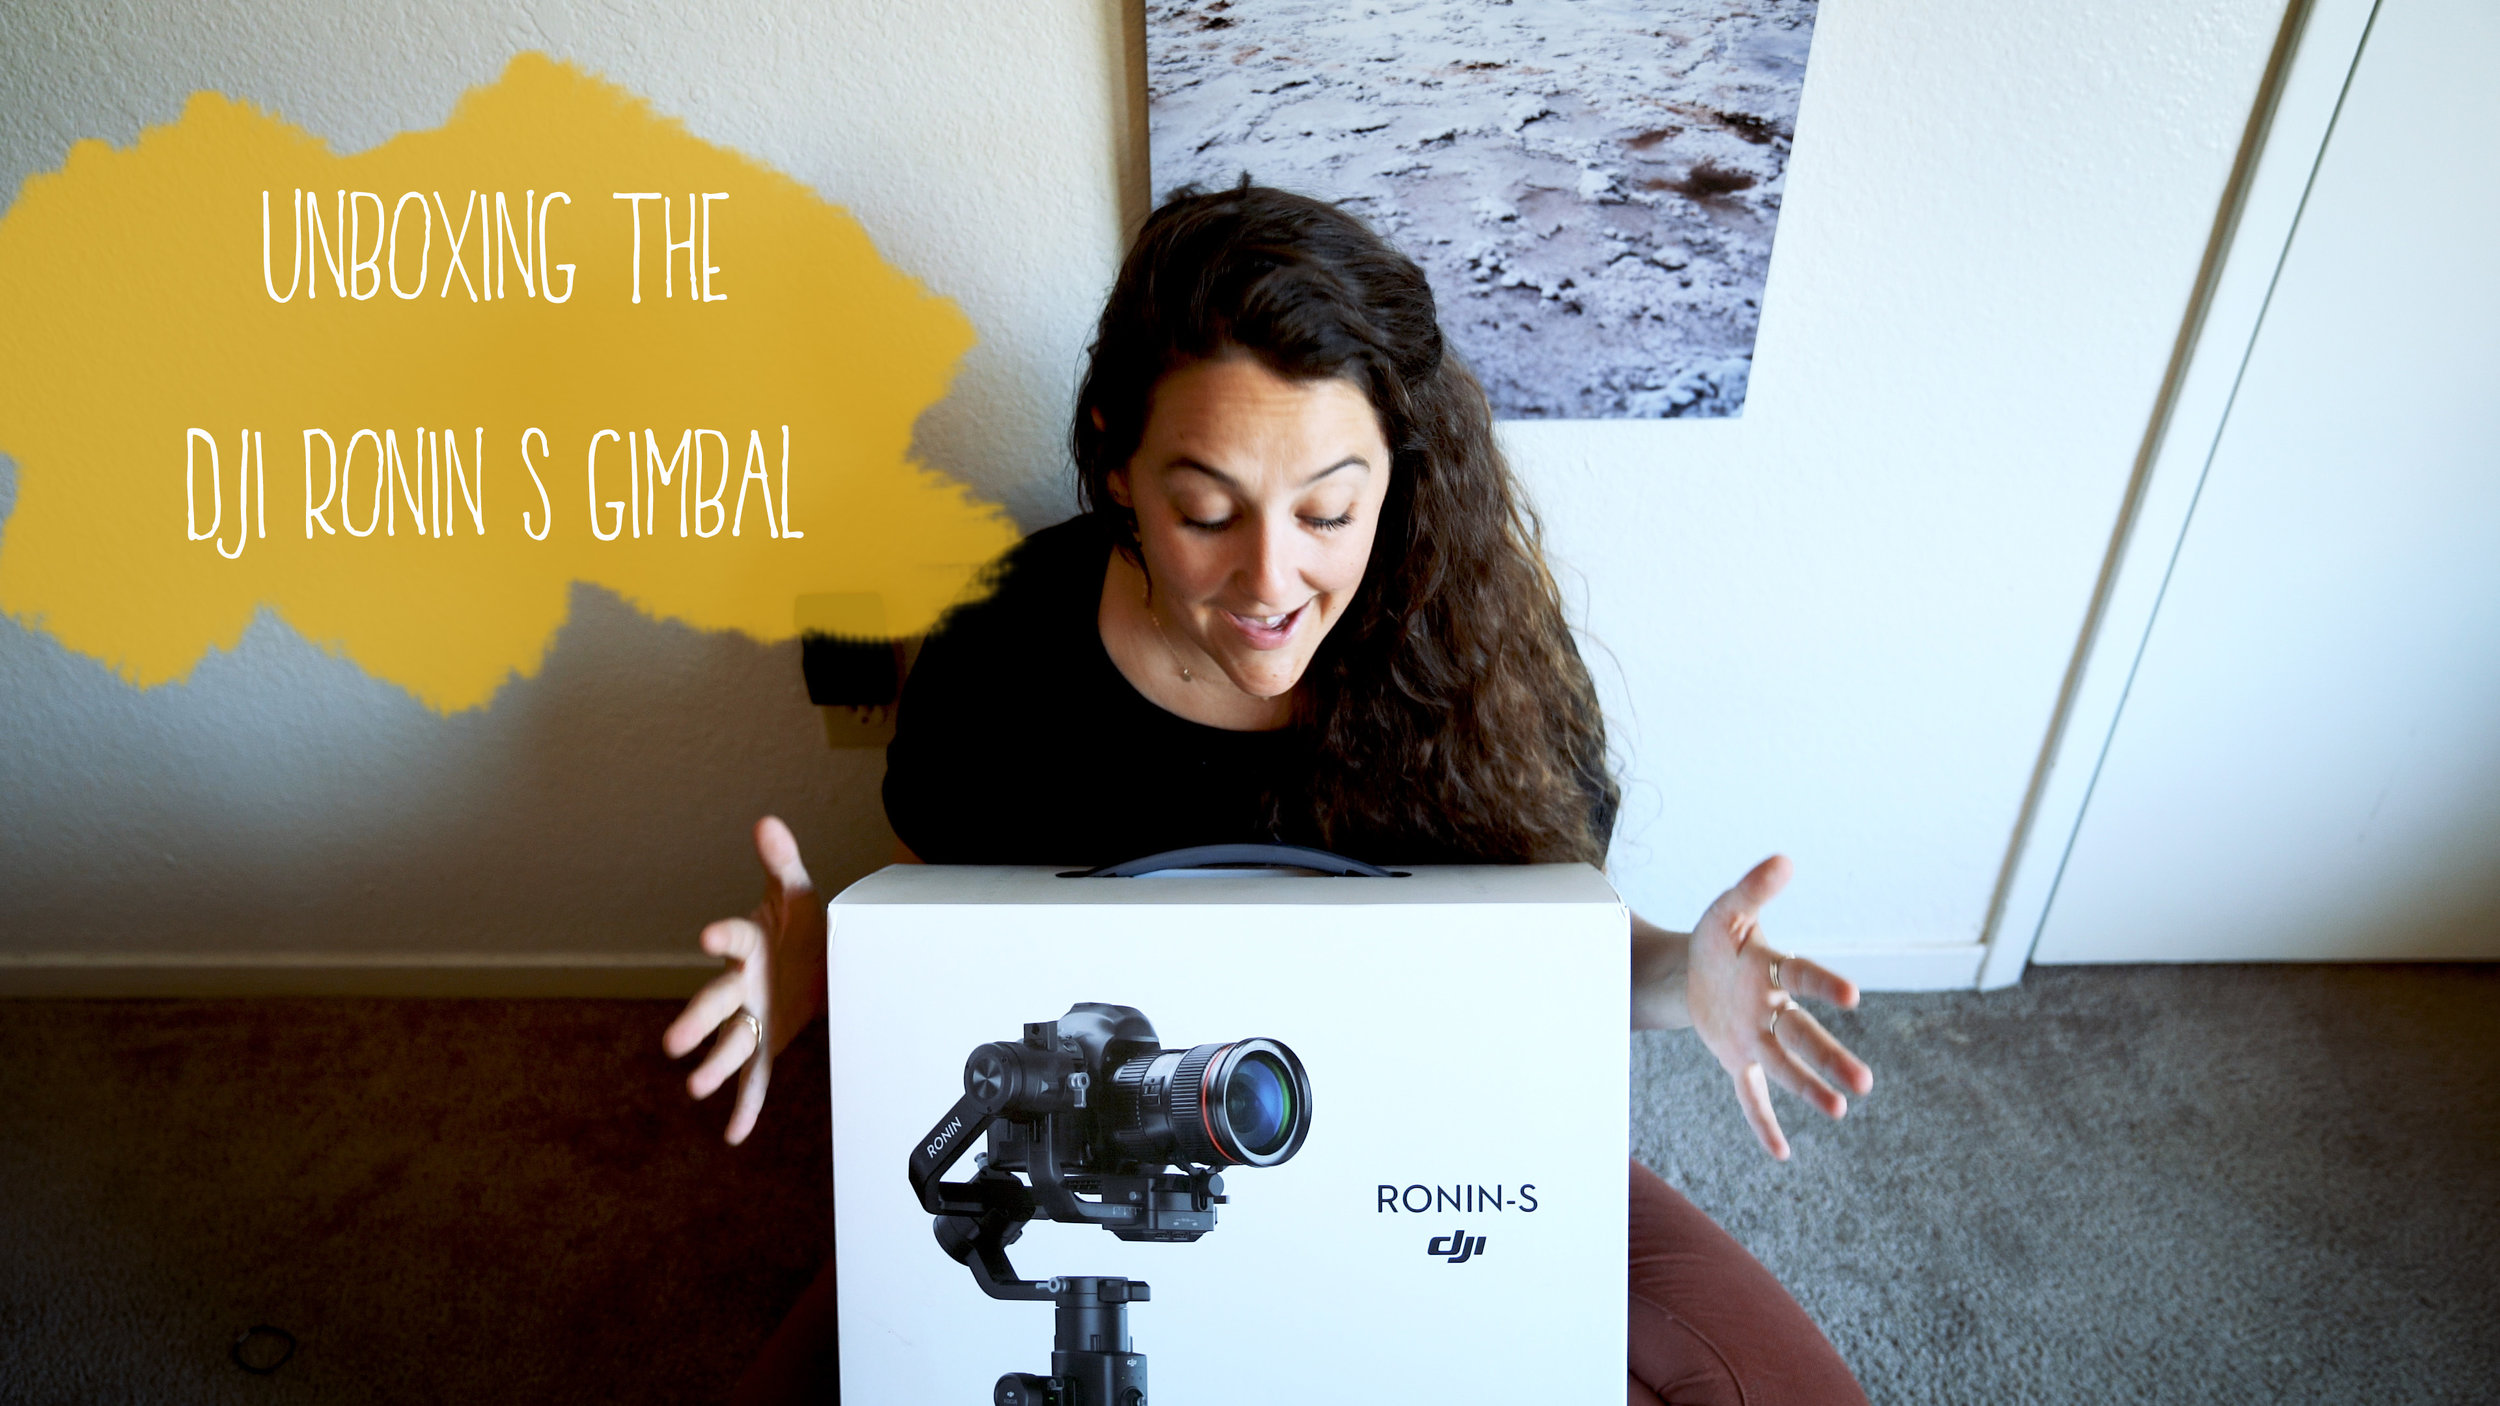 Unboxing the Ronin S Gimbal Stabilizer for DSLR or Full Frames